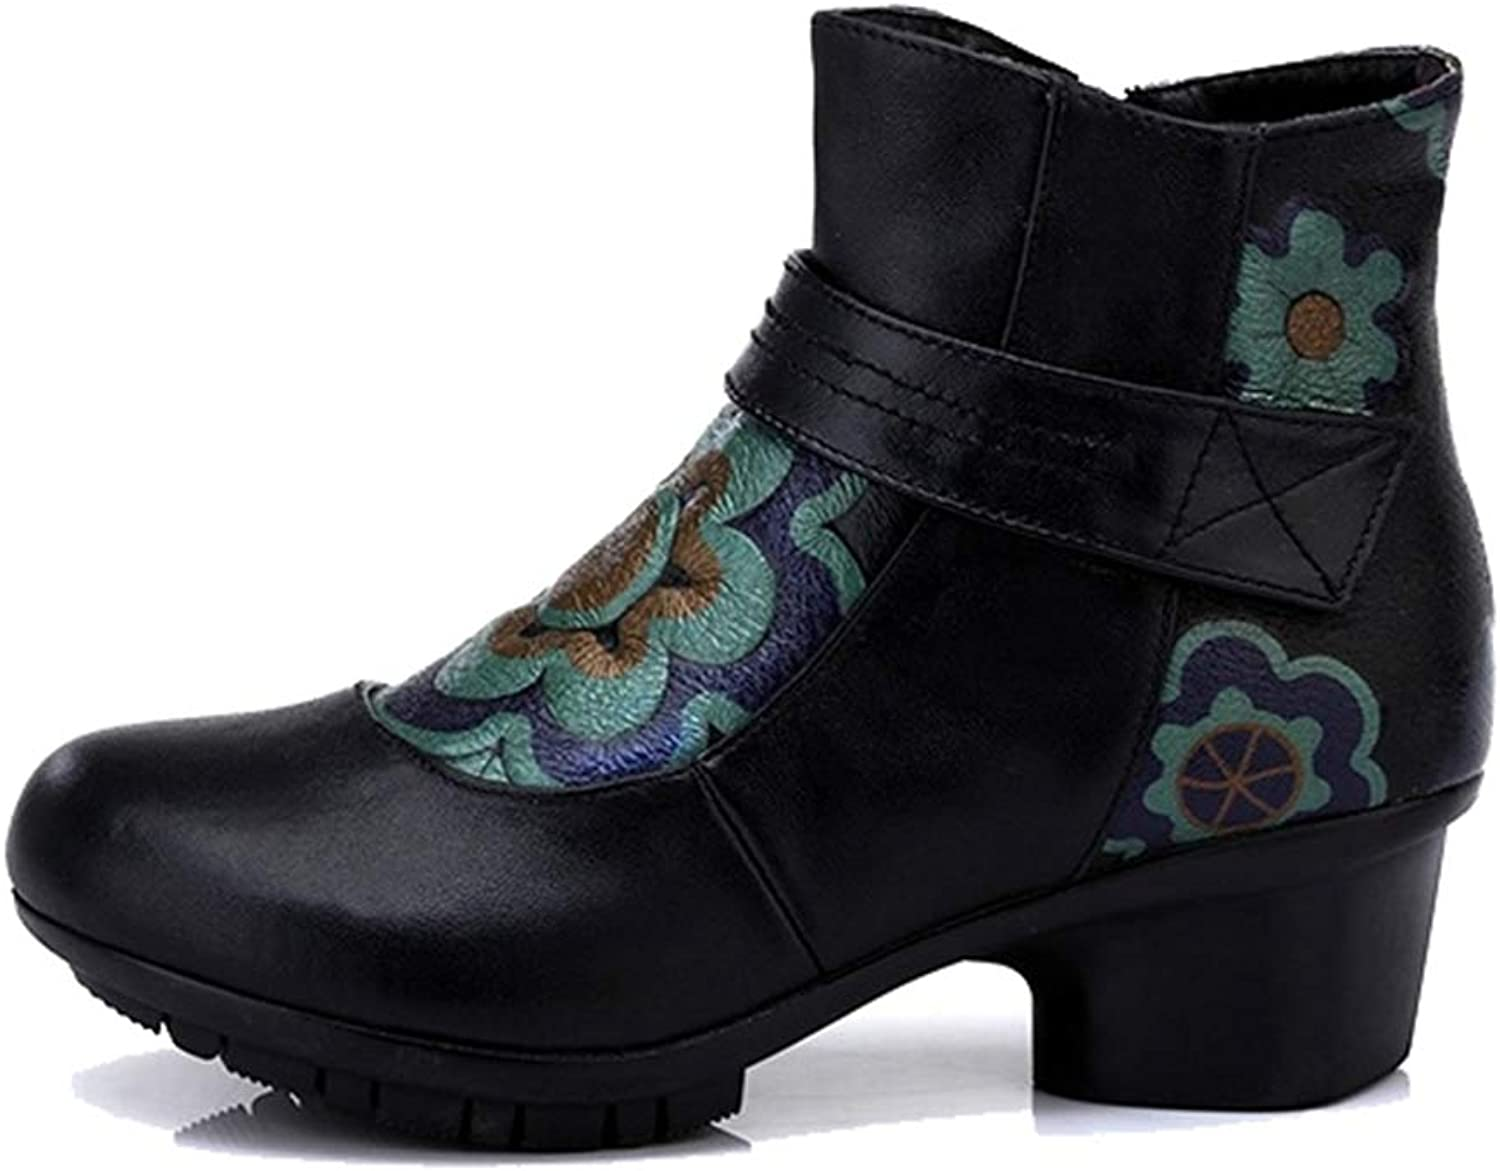 Andy Pansy Original Handmade Genuine Leather National Style Cotton Boots Short Tube with Single Boot Middle Aged Boots